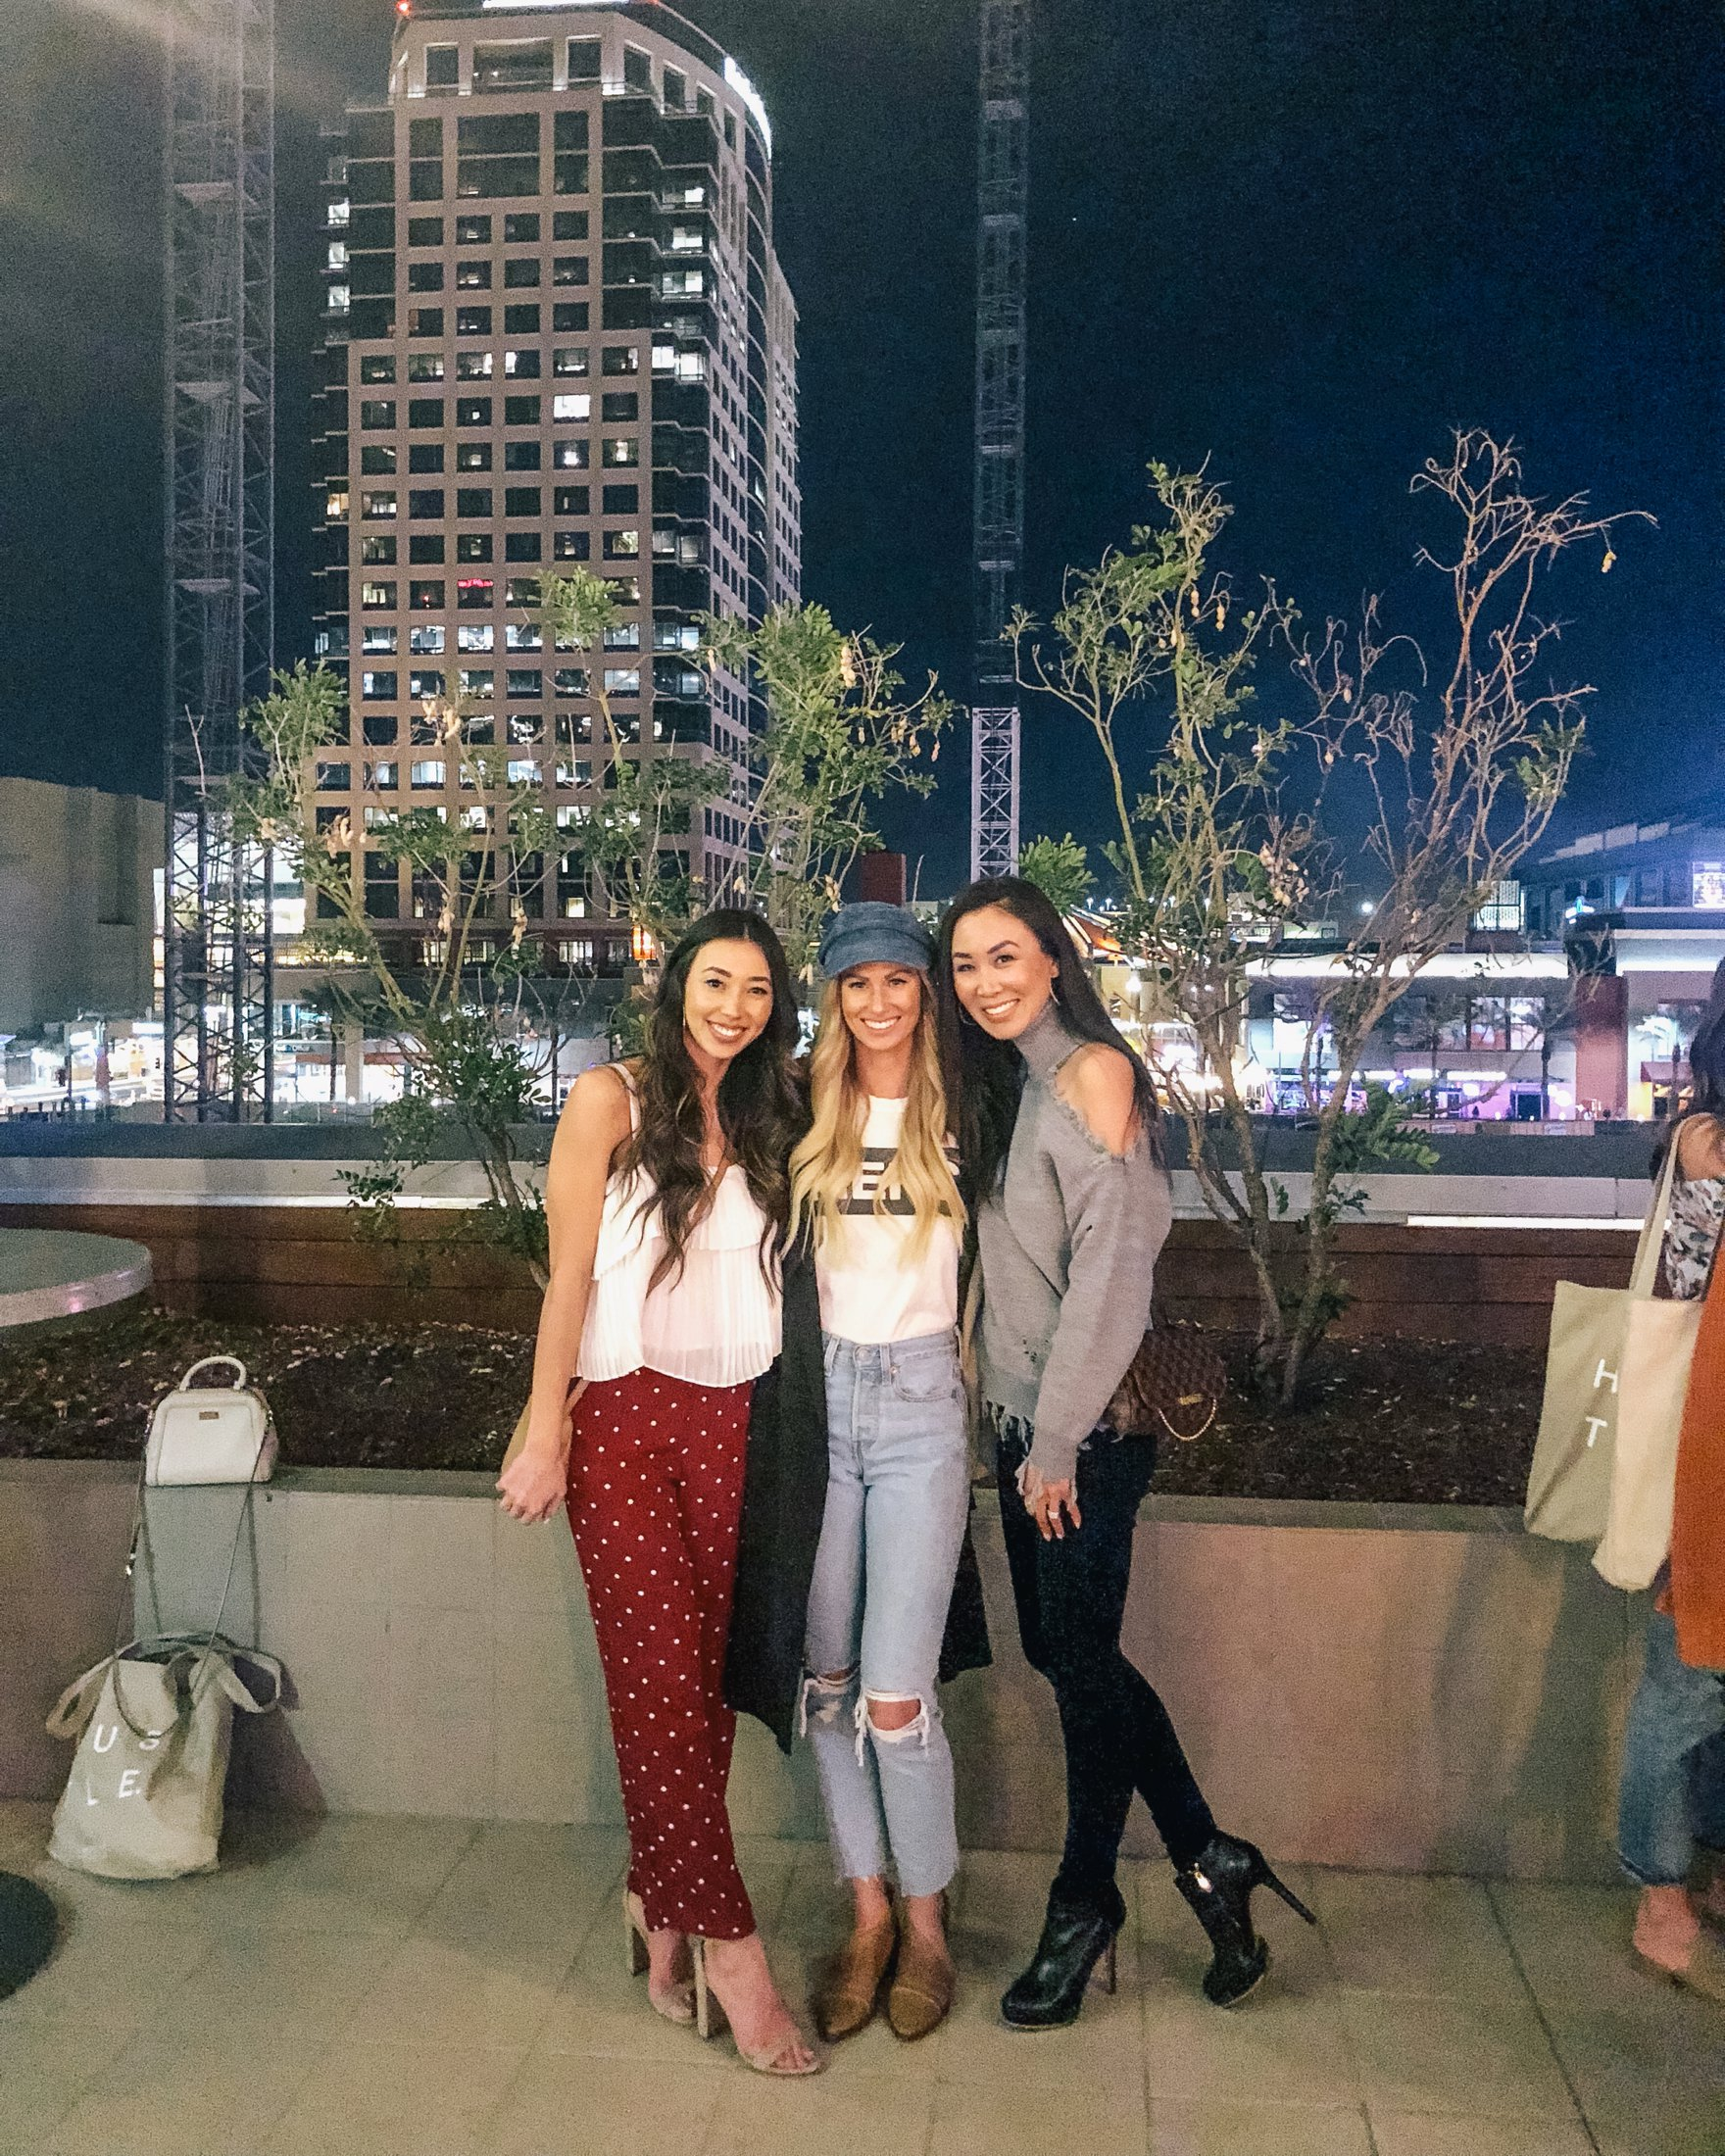 // a business and blogging social media workshop called The Workshop PHX by the Bloguettes - a review. happy hour